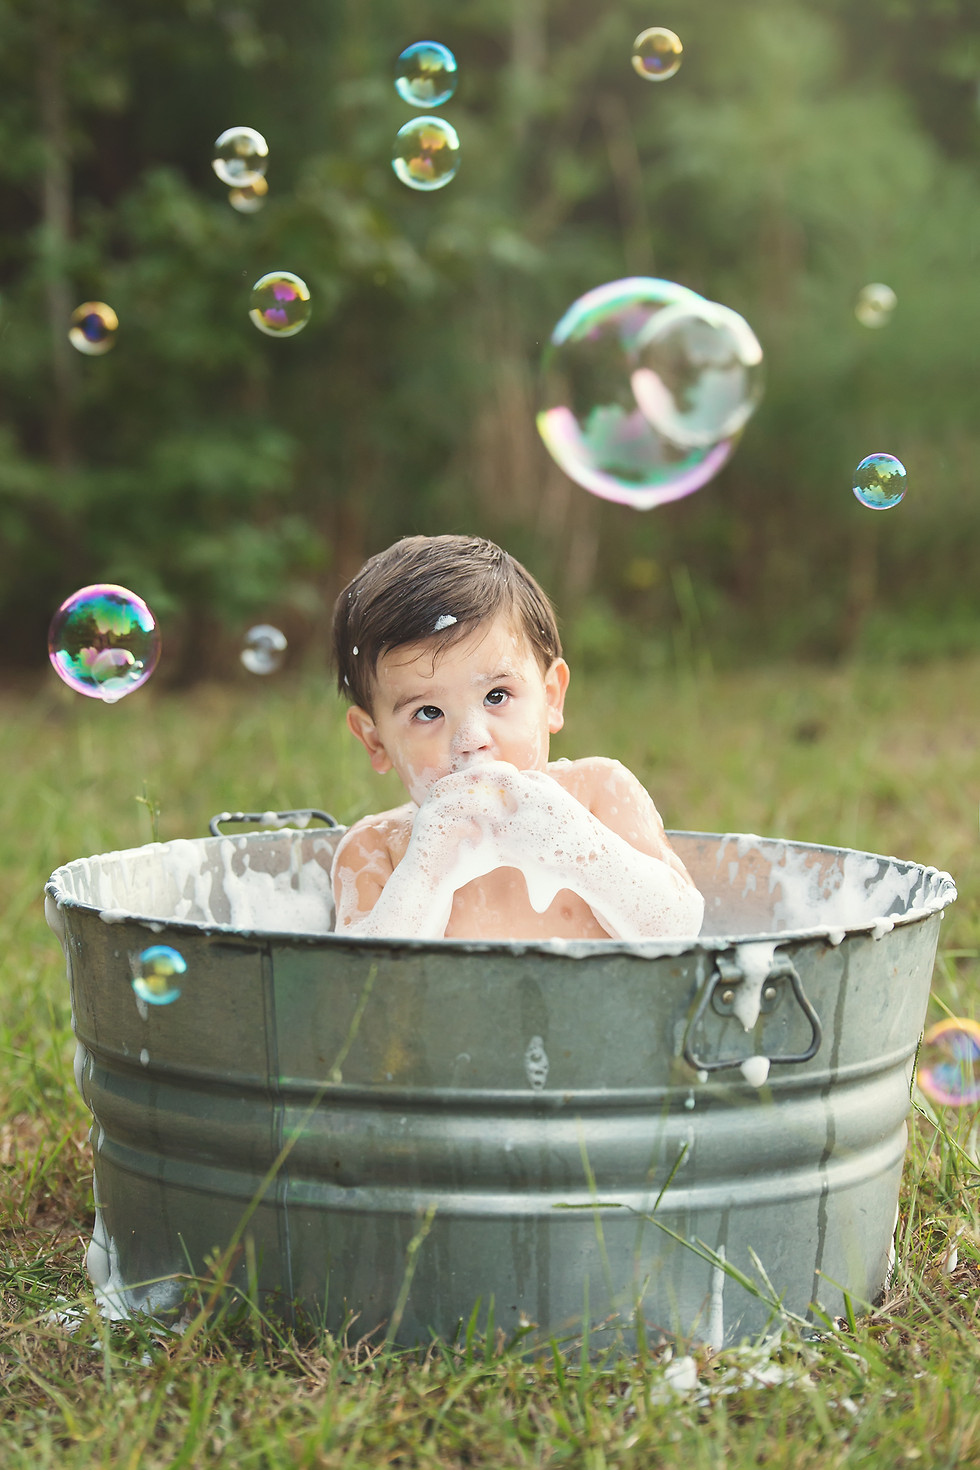 family children kids babies moms portraits photos photography portraiture families williamsburg virginia love snapped photography cake smash baby bath one year old baby boy